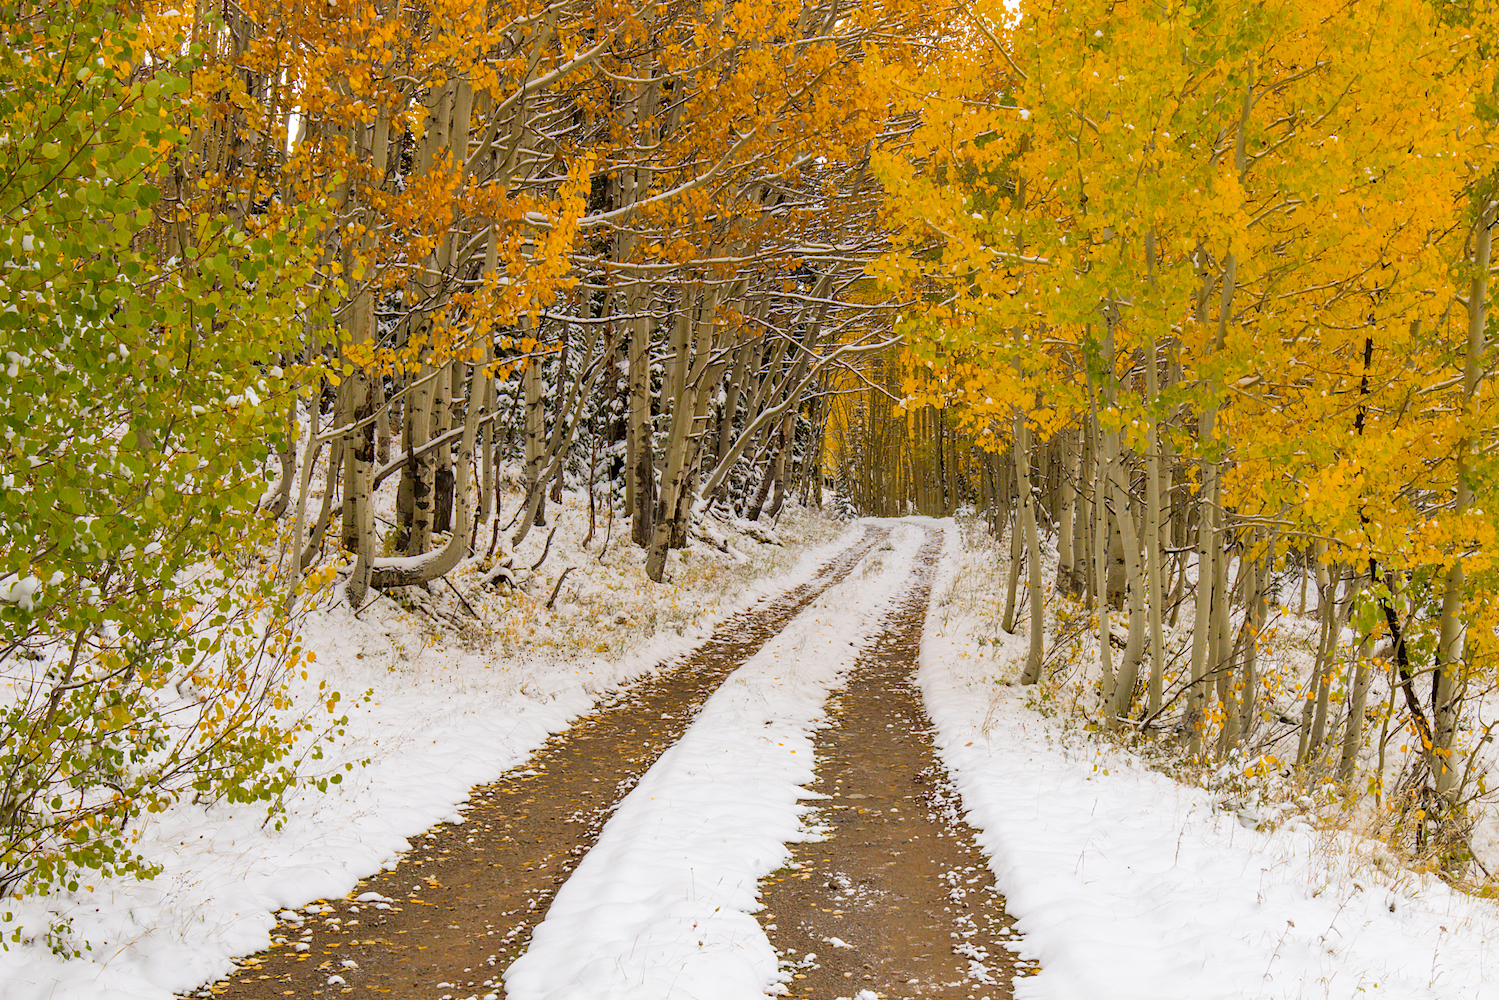 Snowy Fall Day, Image # 0802